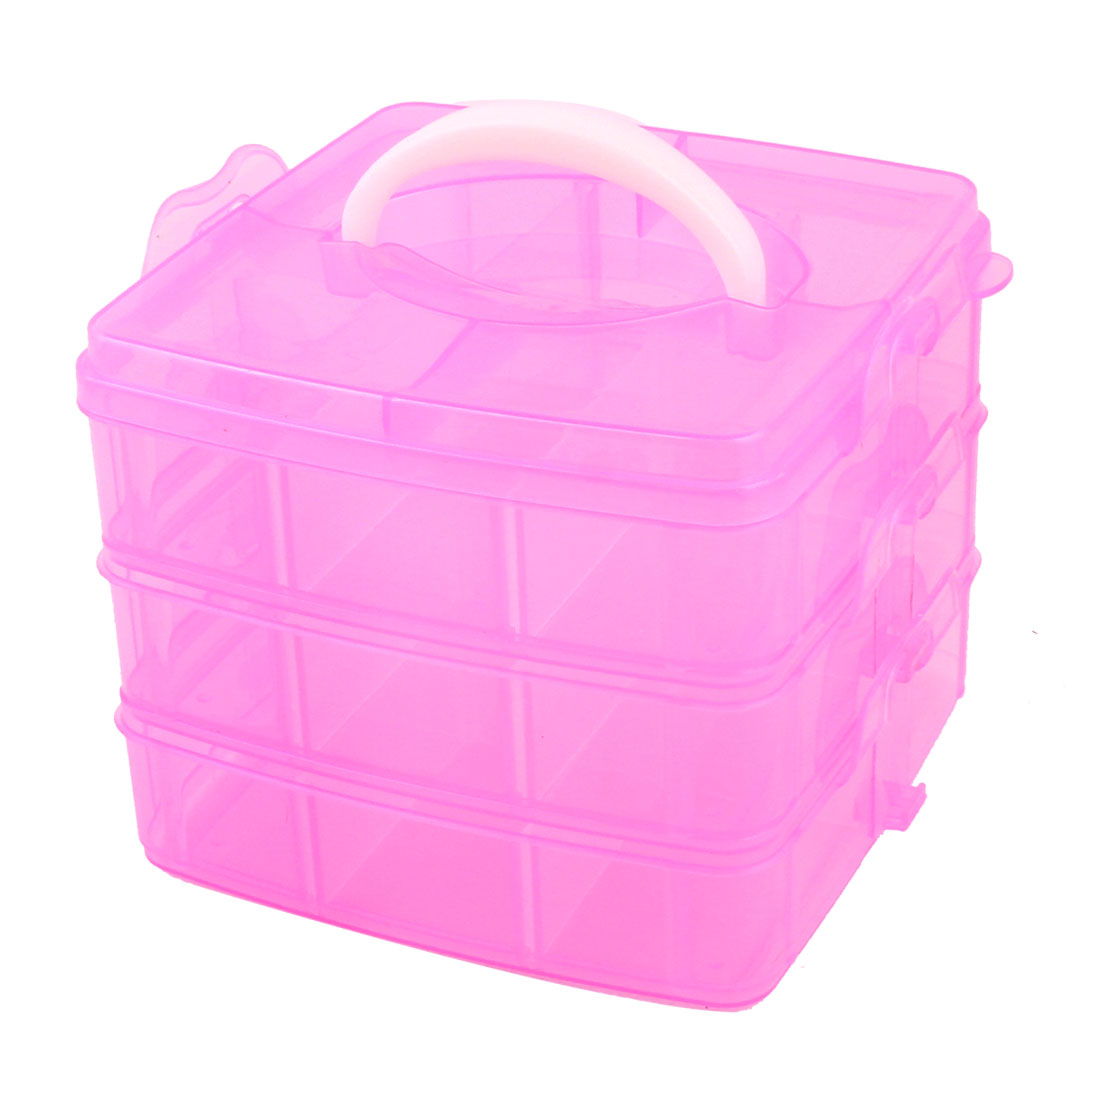 Carry Handle Triple Layers 18 Compartments Separable Storage Case Fuchsia